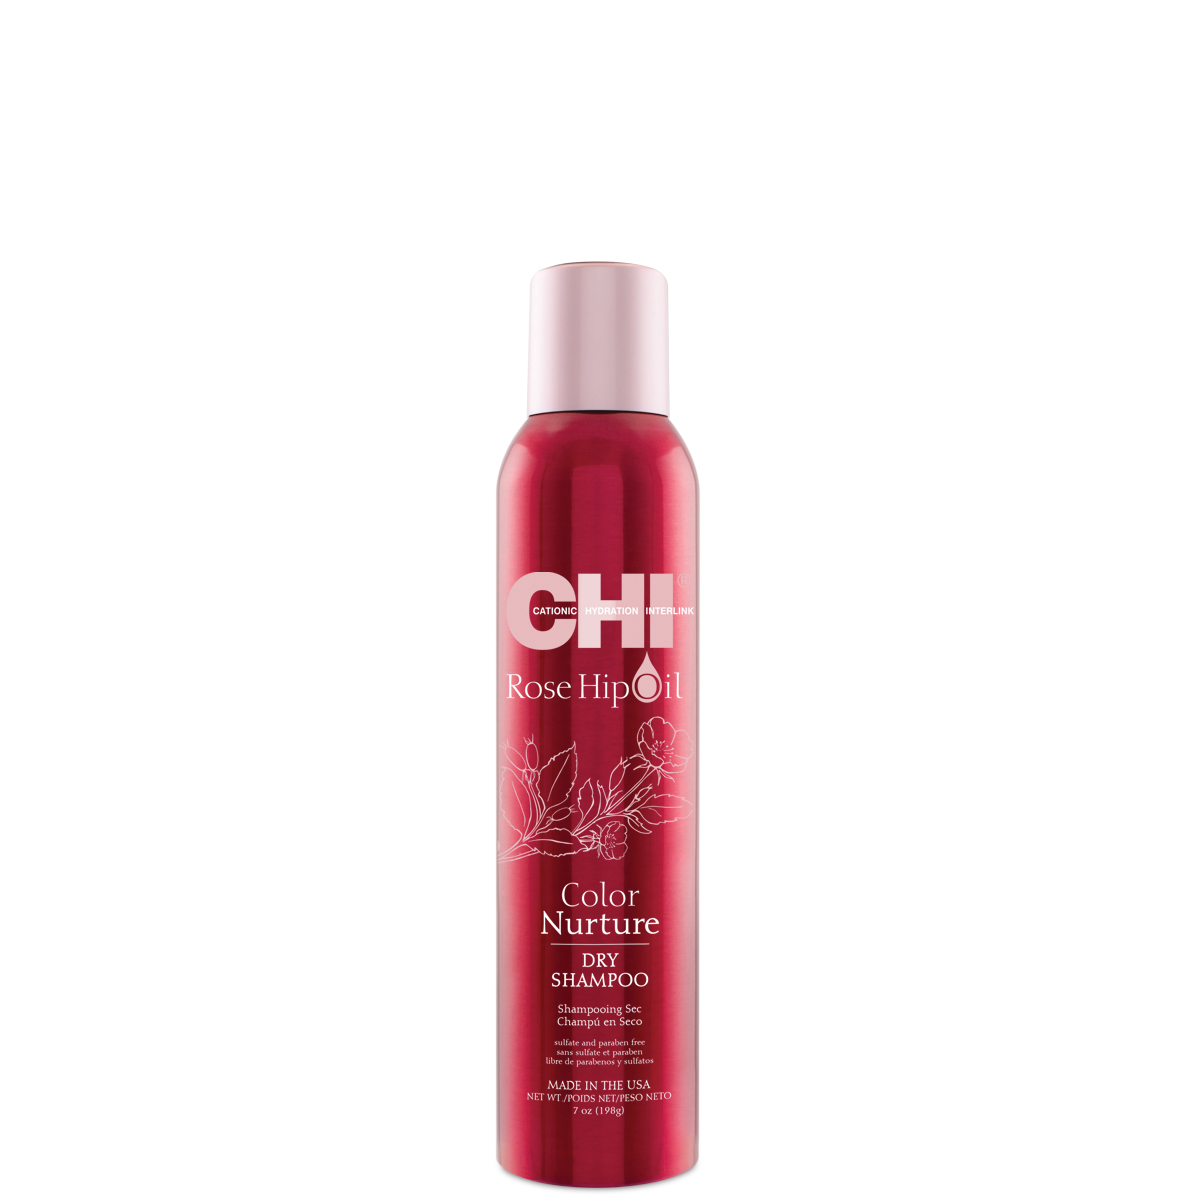 CHI Rose Hip Oil Repair & Shine Leave-In Tonic Anti-Frizz